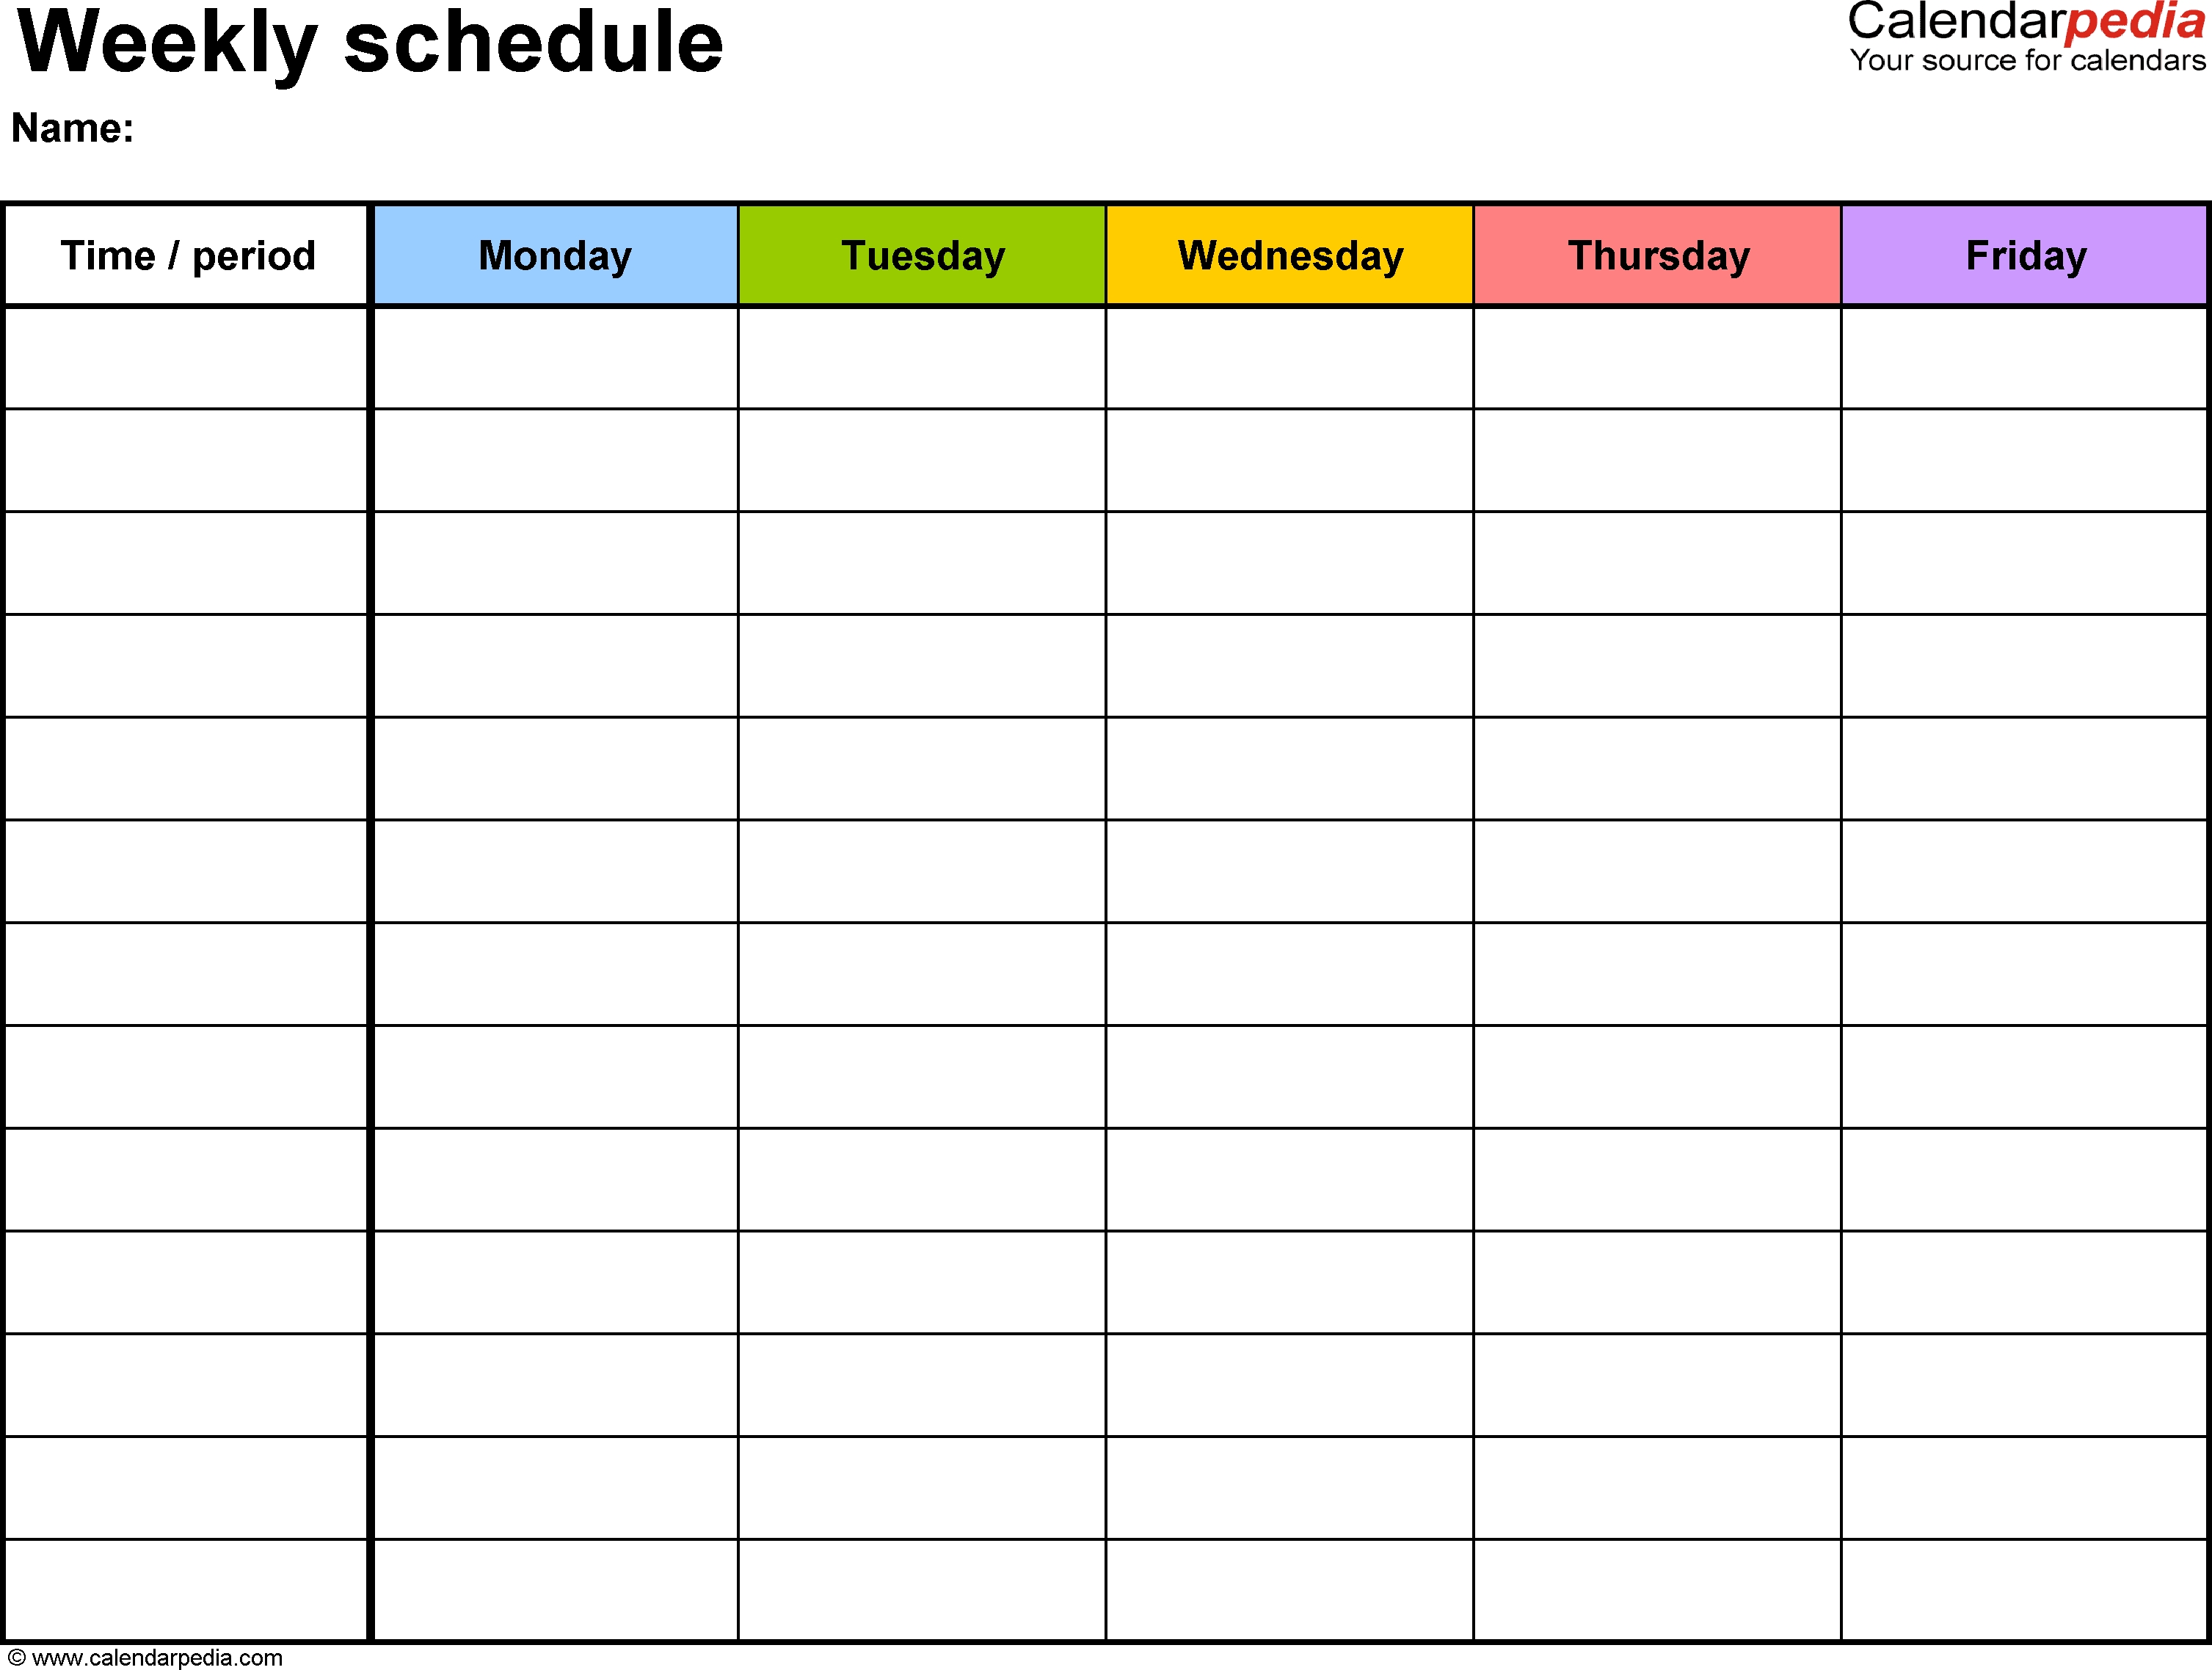 Weekly Schedule Template For Word Version 1: Landscape, 1-Microsoft Template Calendar Coundown